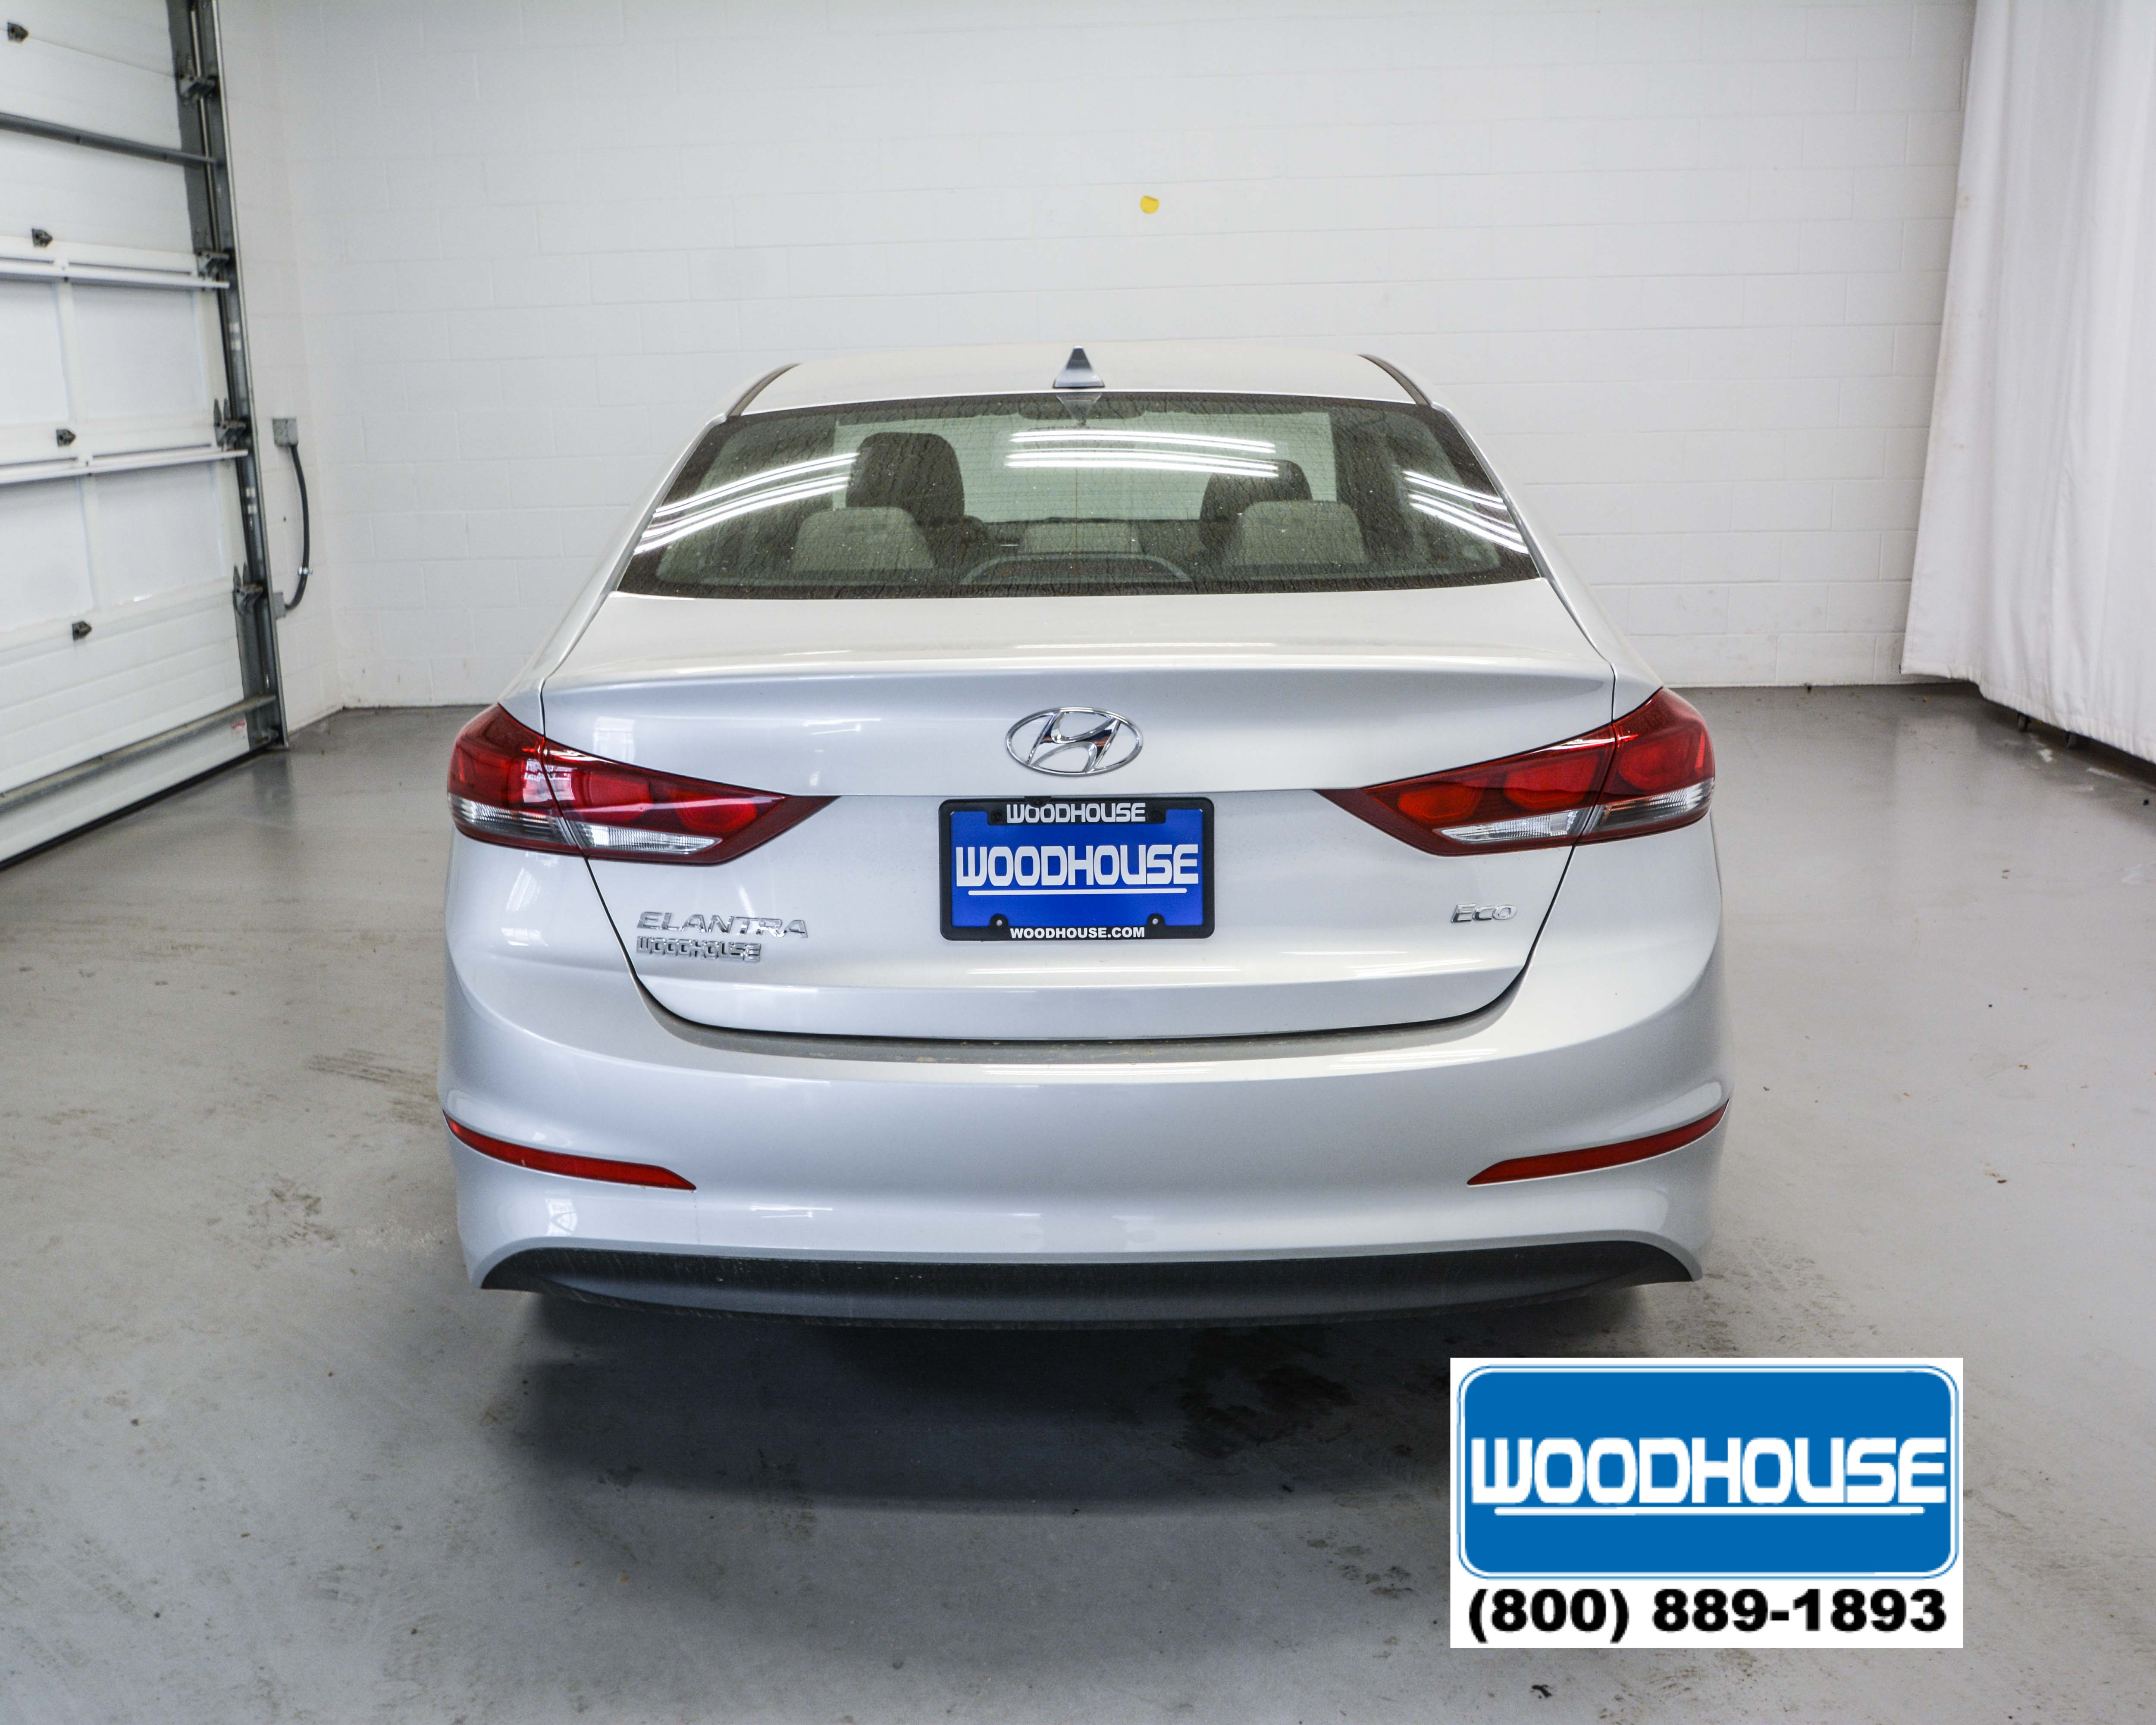 New amp used cars for sale omaha ne woodhouse auto - Search For Sioux City Used Cars From Woodhouse Mitsubishi